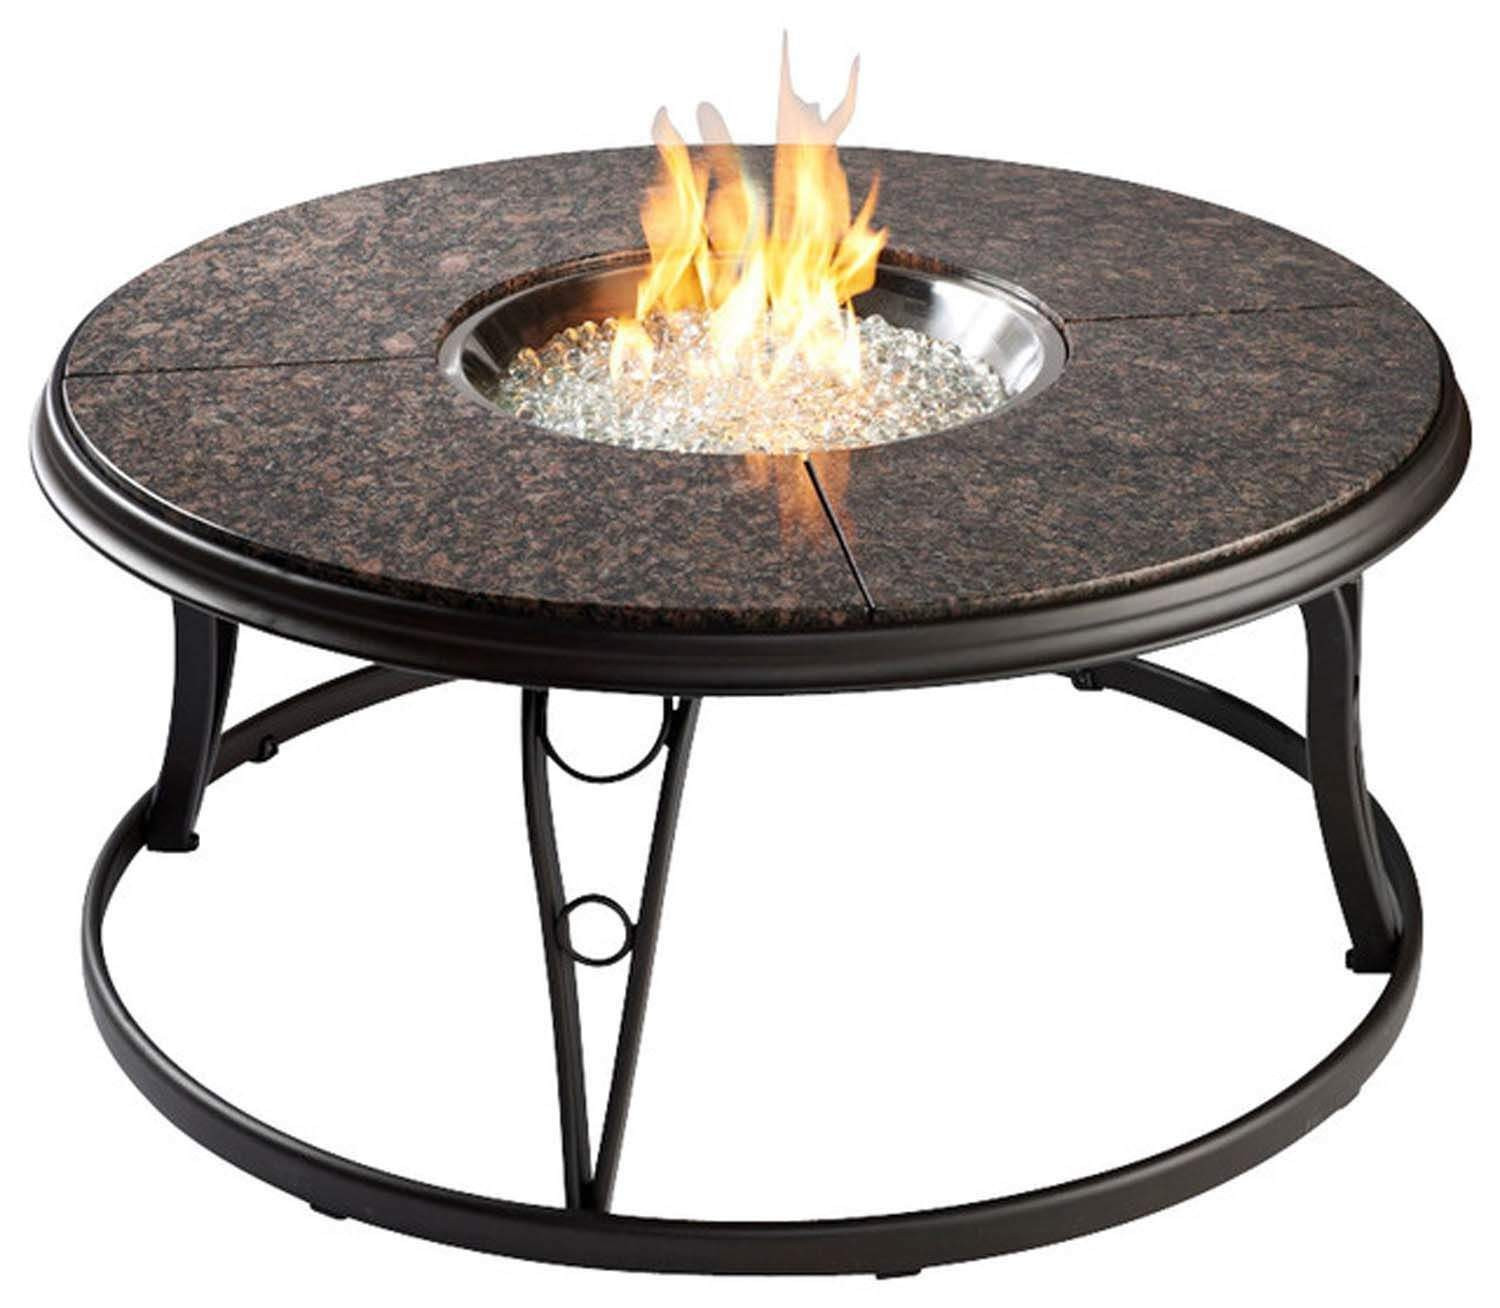 Best ideas about Outdoor Gas Fire Pits . Save or Pin Outdoor Greatroom Granite 42 Inch Round Gas Fire Pit Table Now.